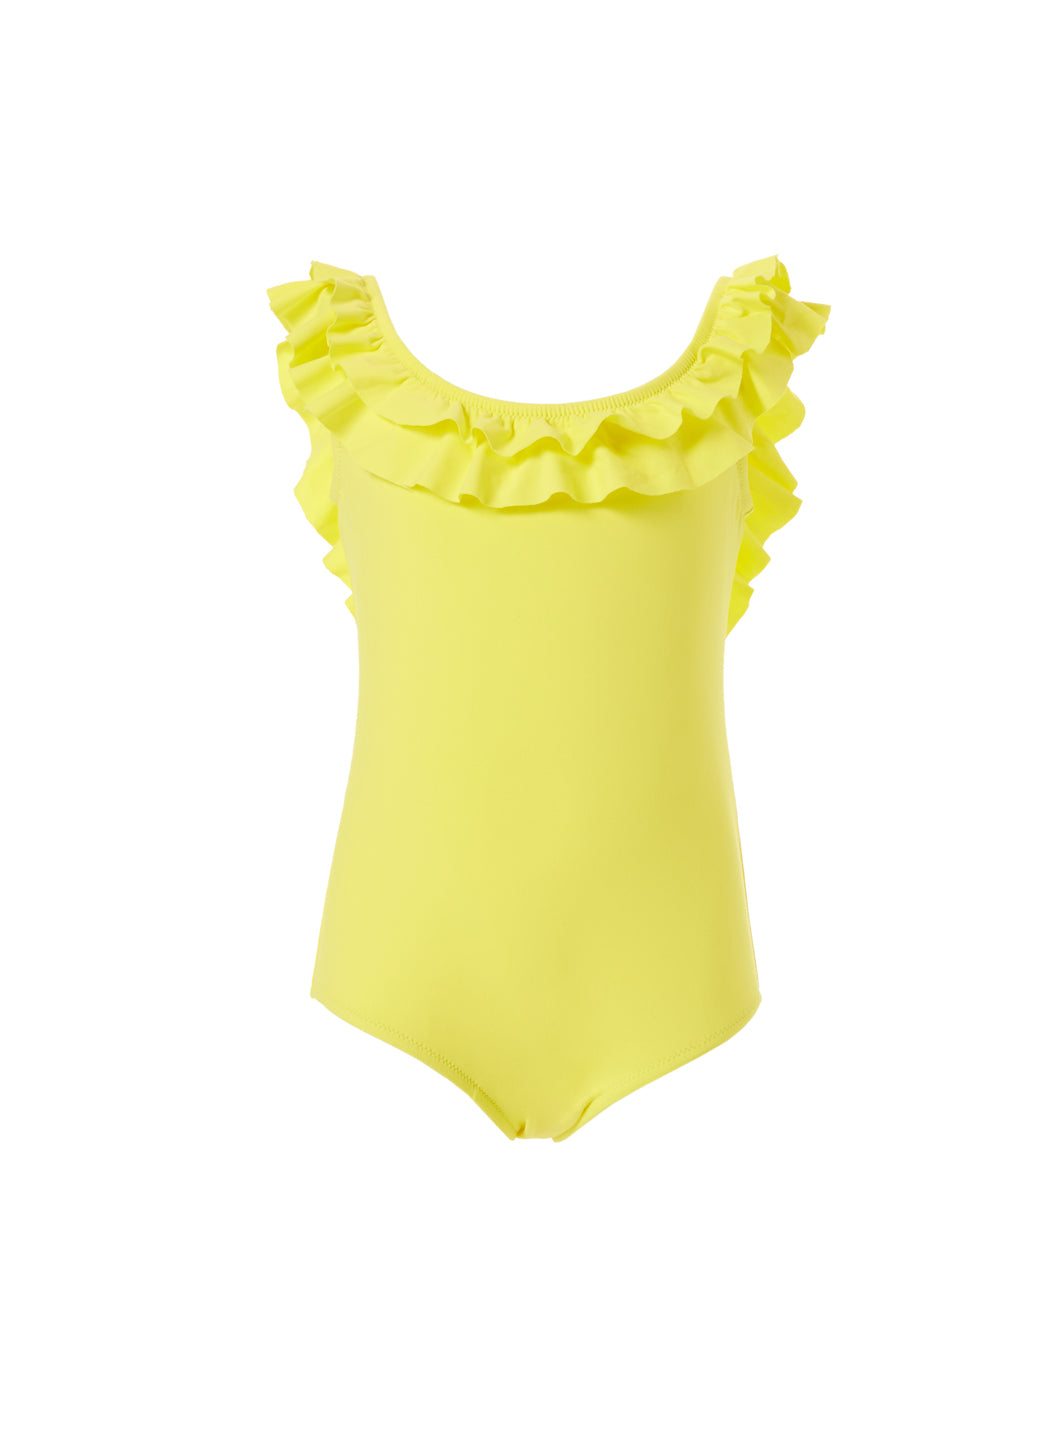 Baby Missy Yellow Over the Shoulder Frill One Piece Swimsuit - Melissa Odabash Kids Swimsuits